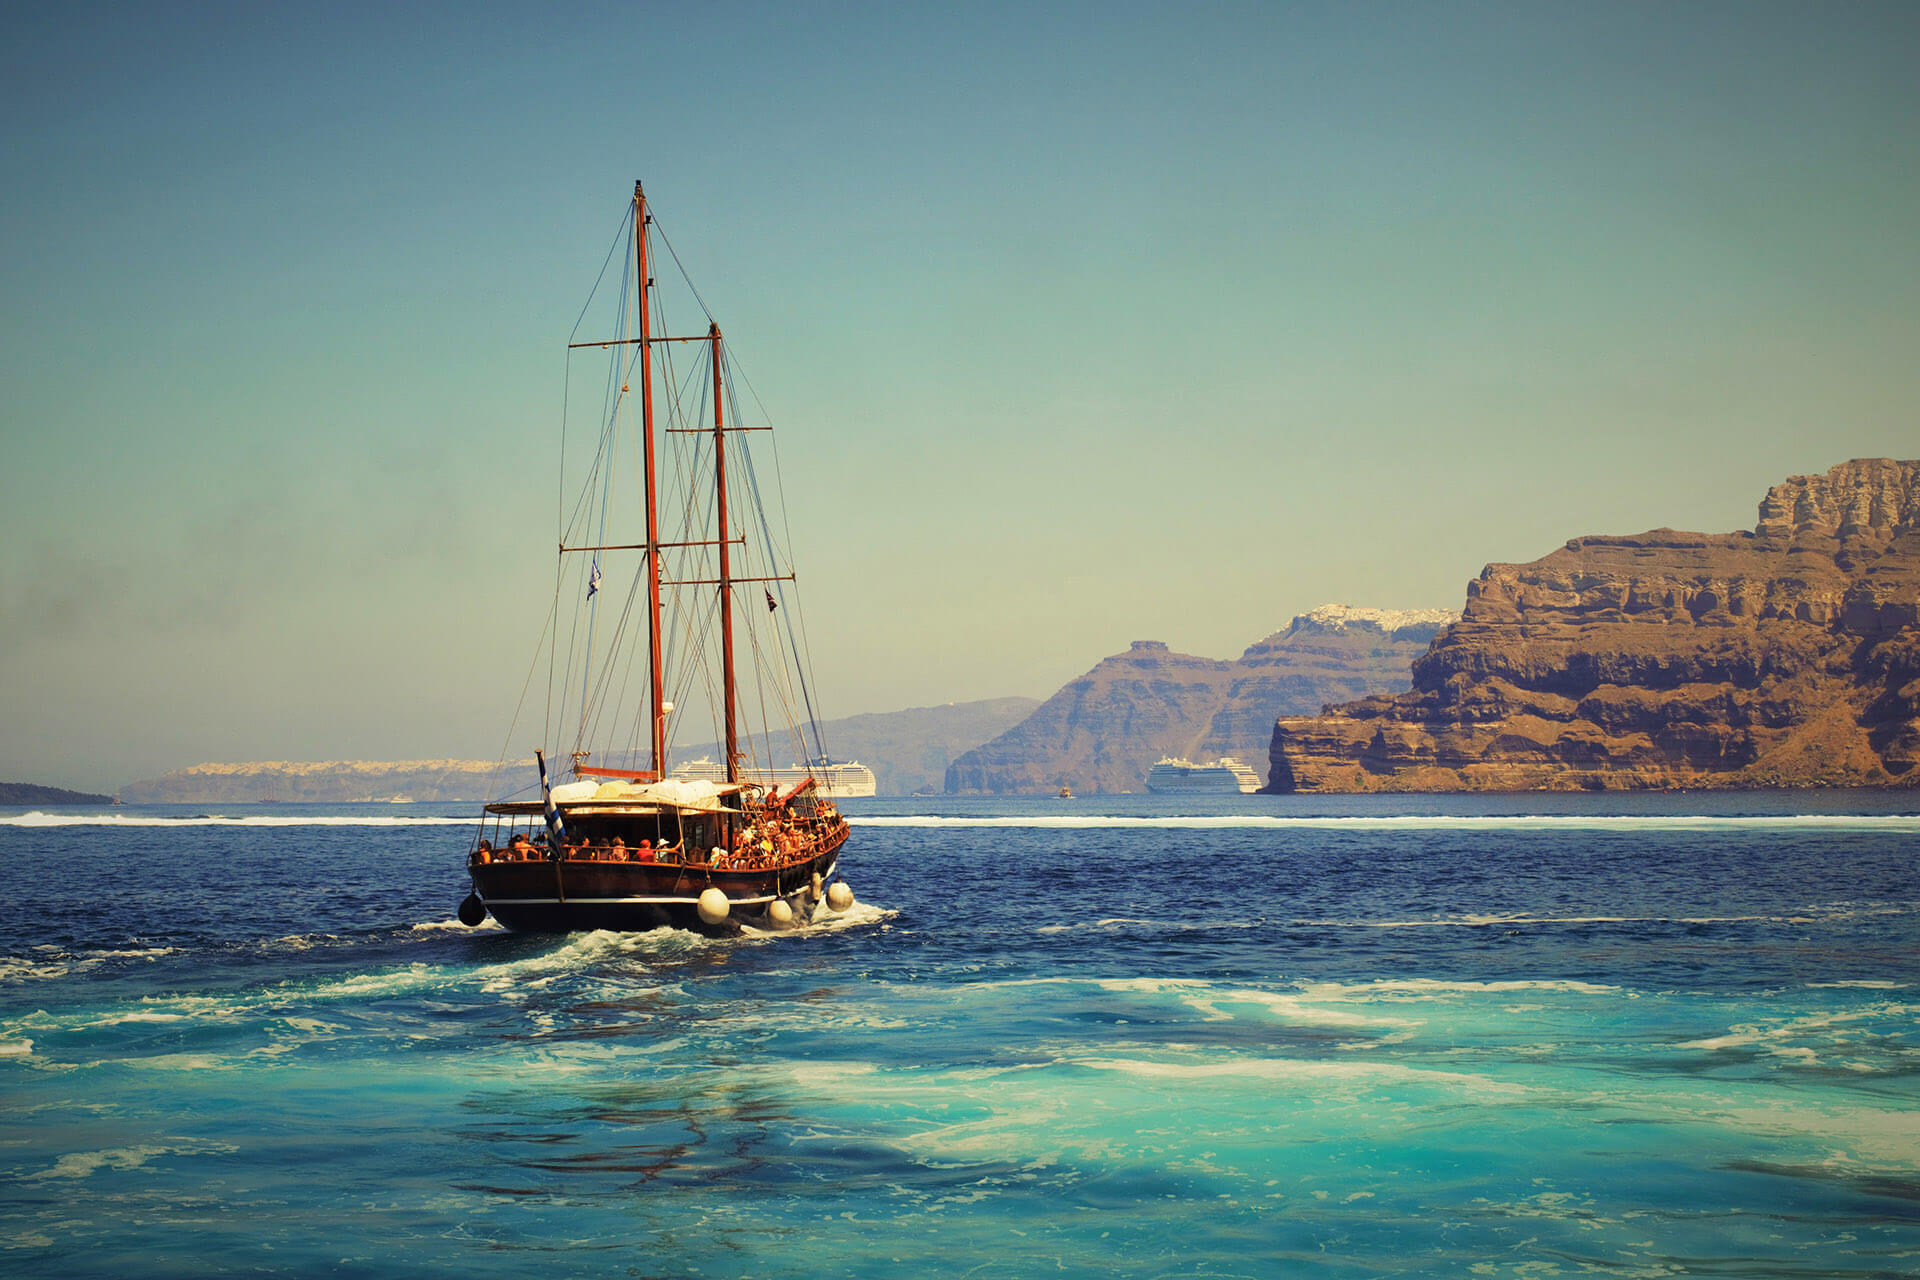 santorini_photography_2015